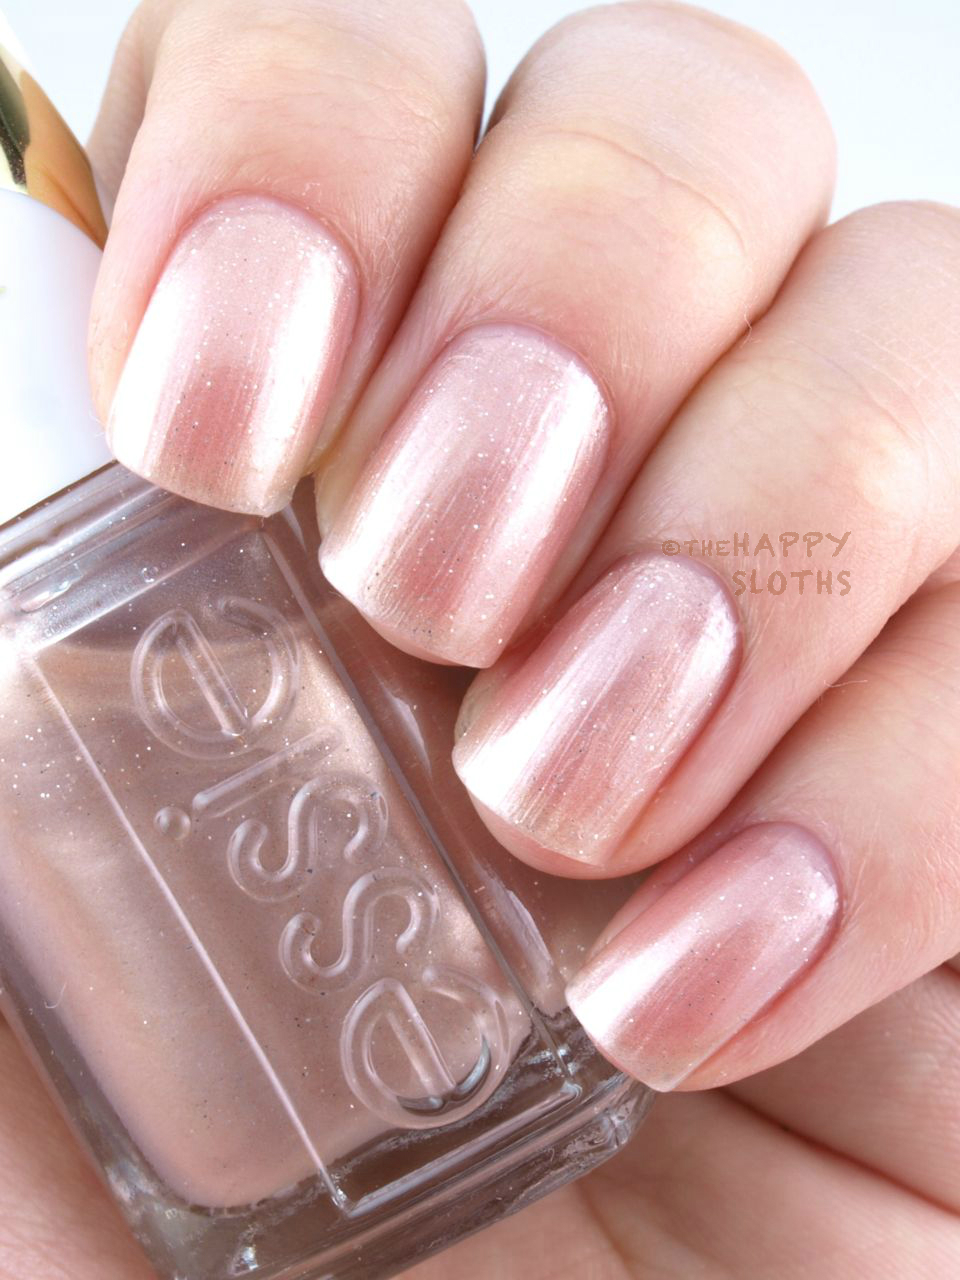 Essie Retro Revival 2016 Collection Review And Swatches The Happy Sloths Beauty Amp Makeup